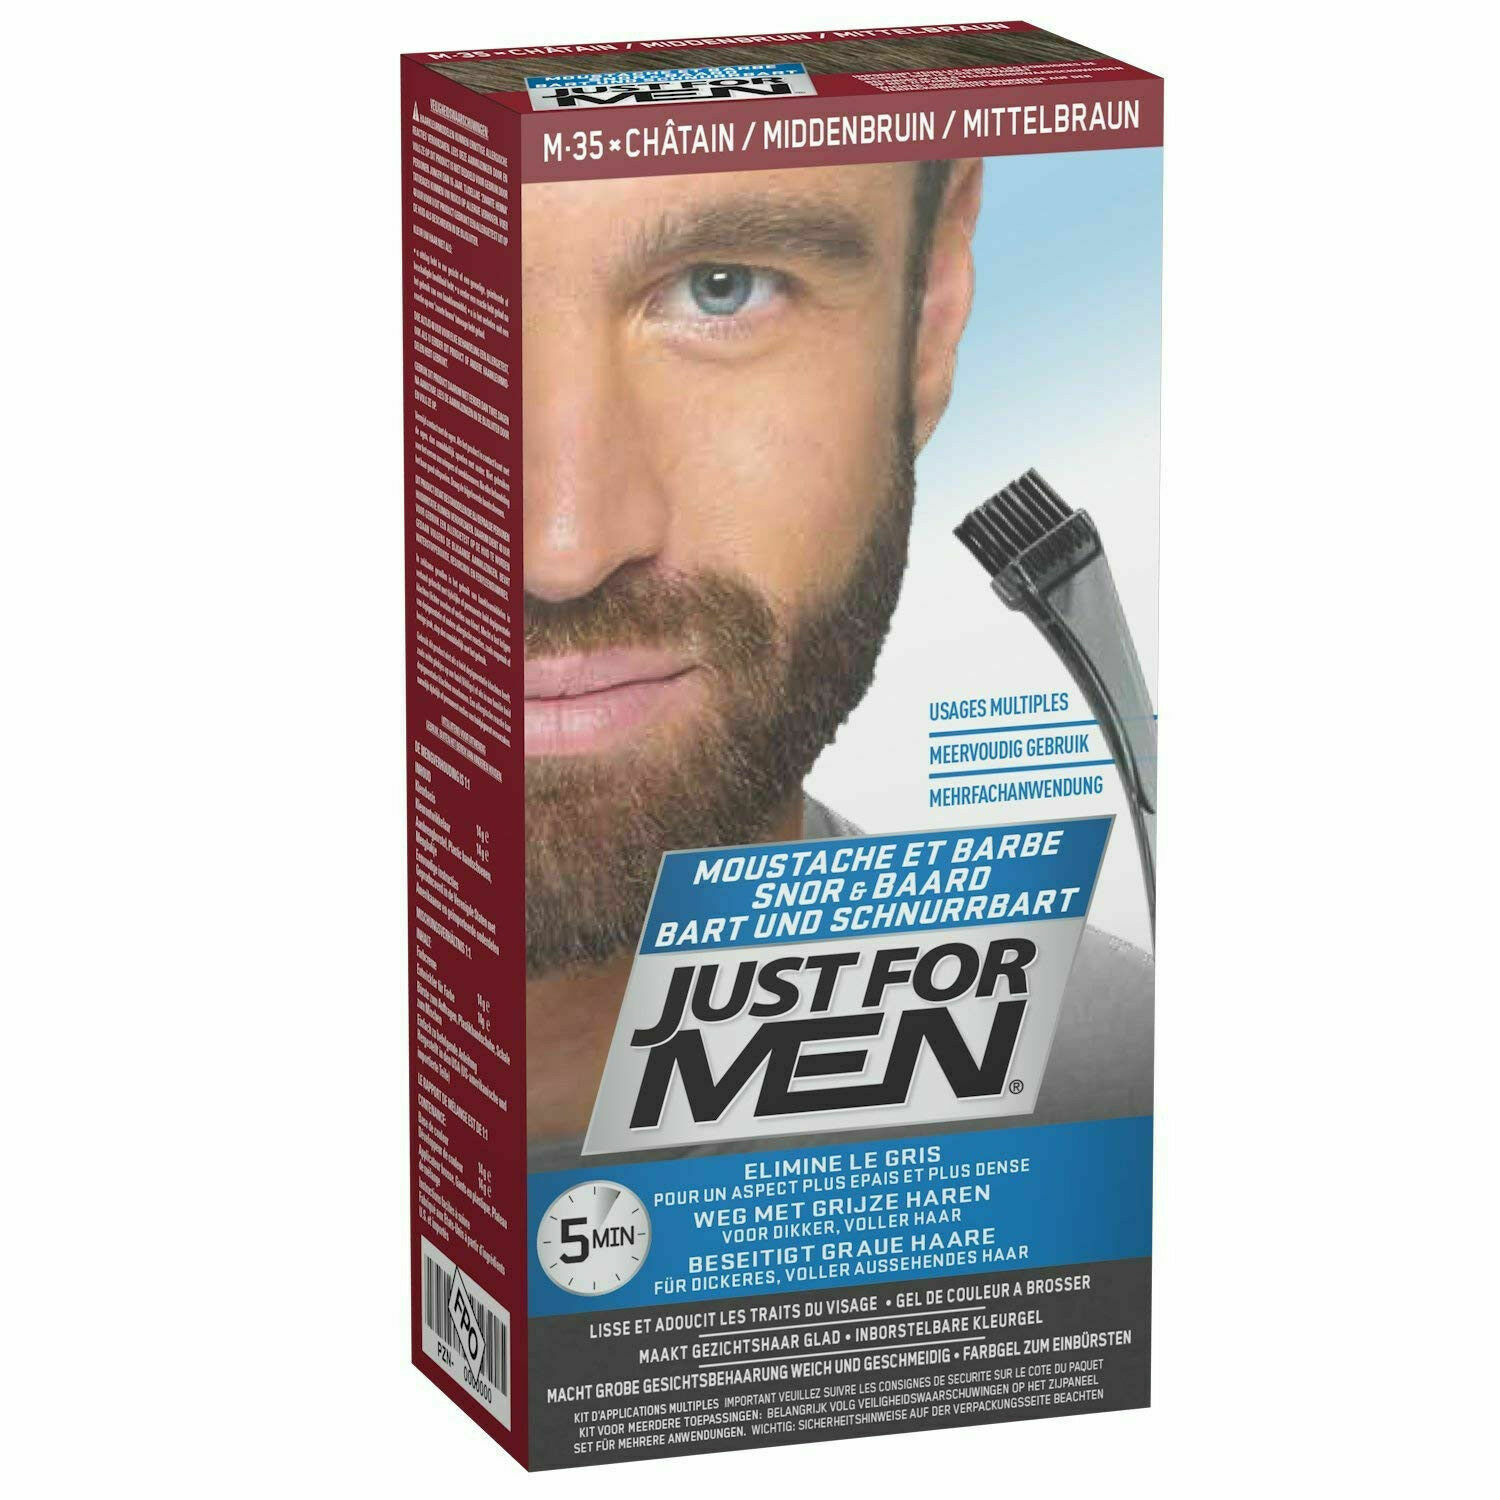 Just For MEN M35 Moustache and Beard Facial Hair Color - Medium Brown